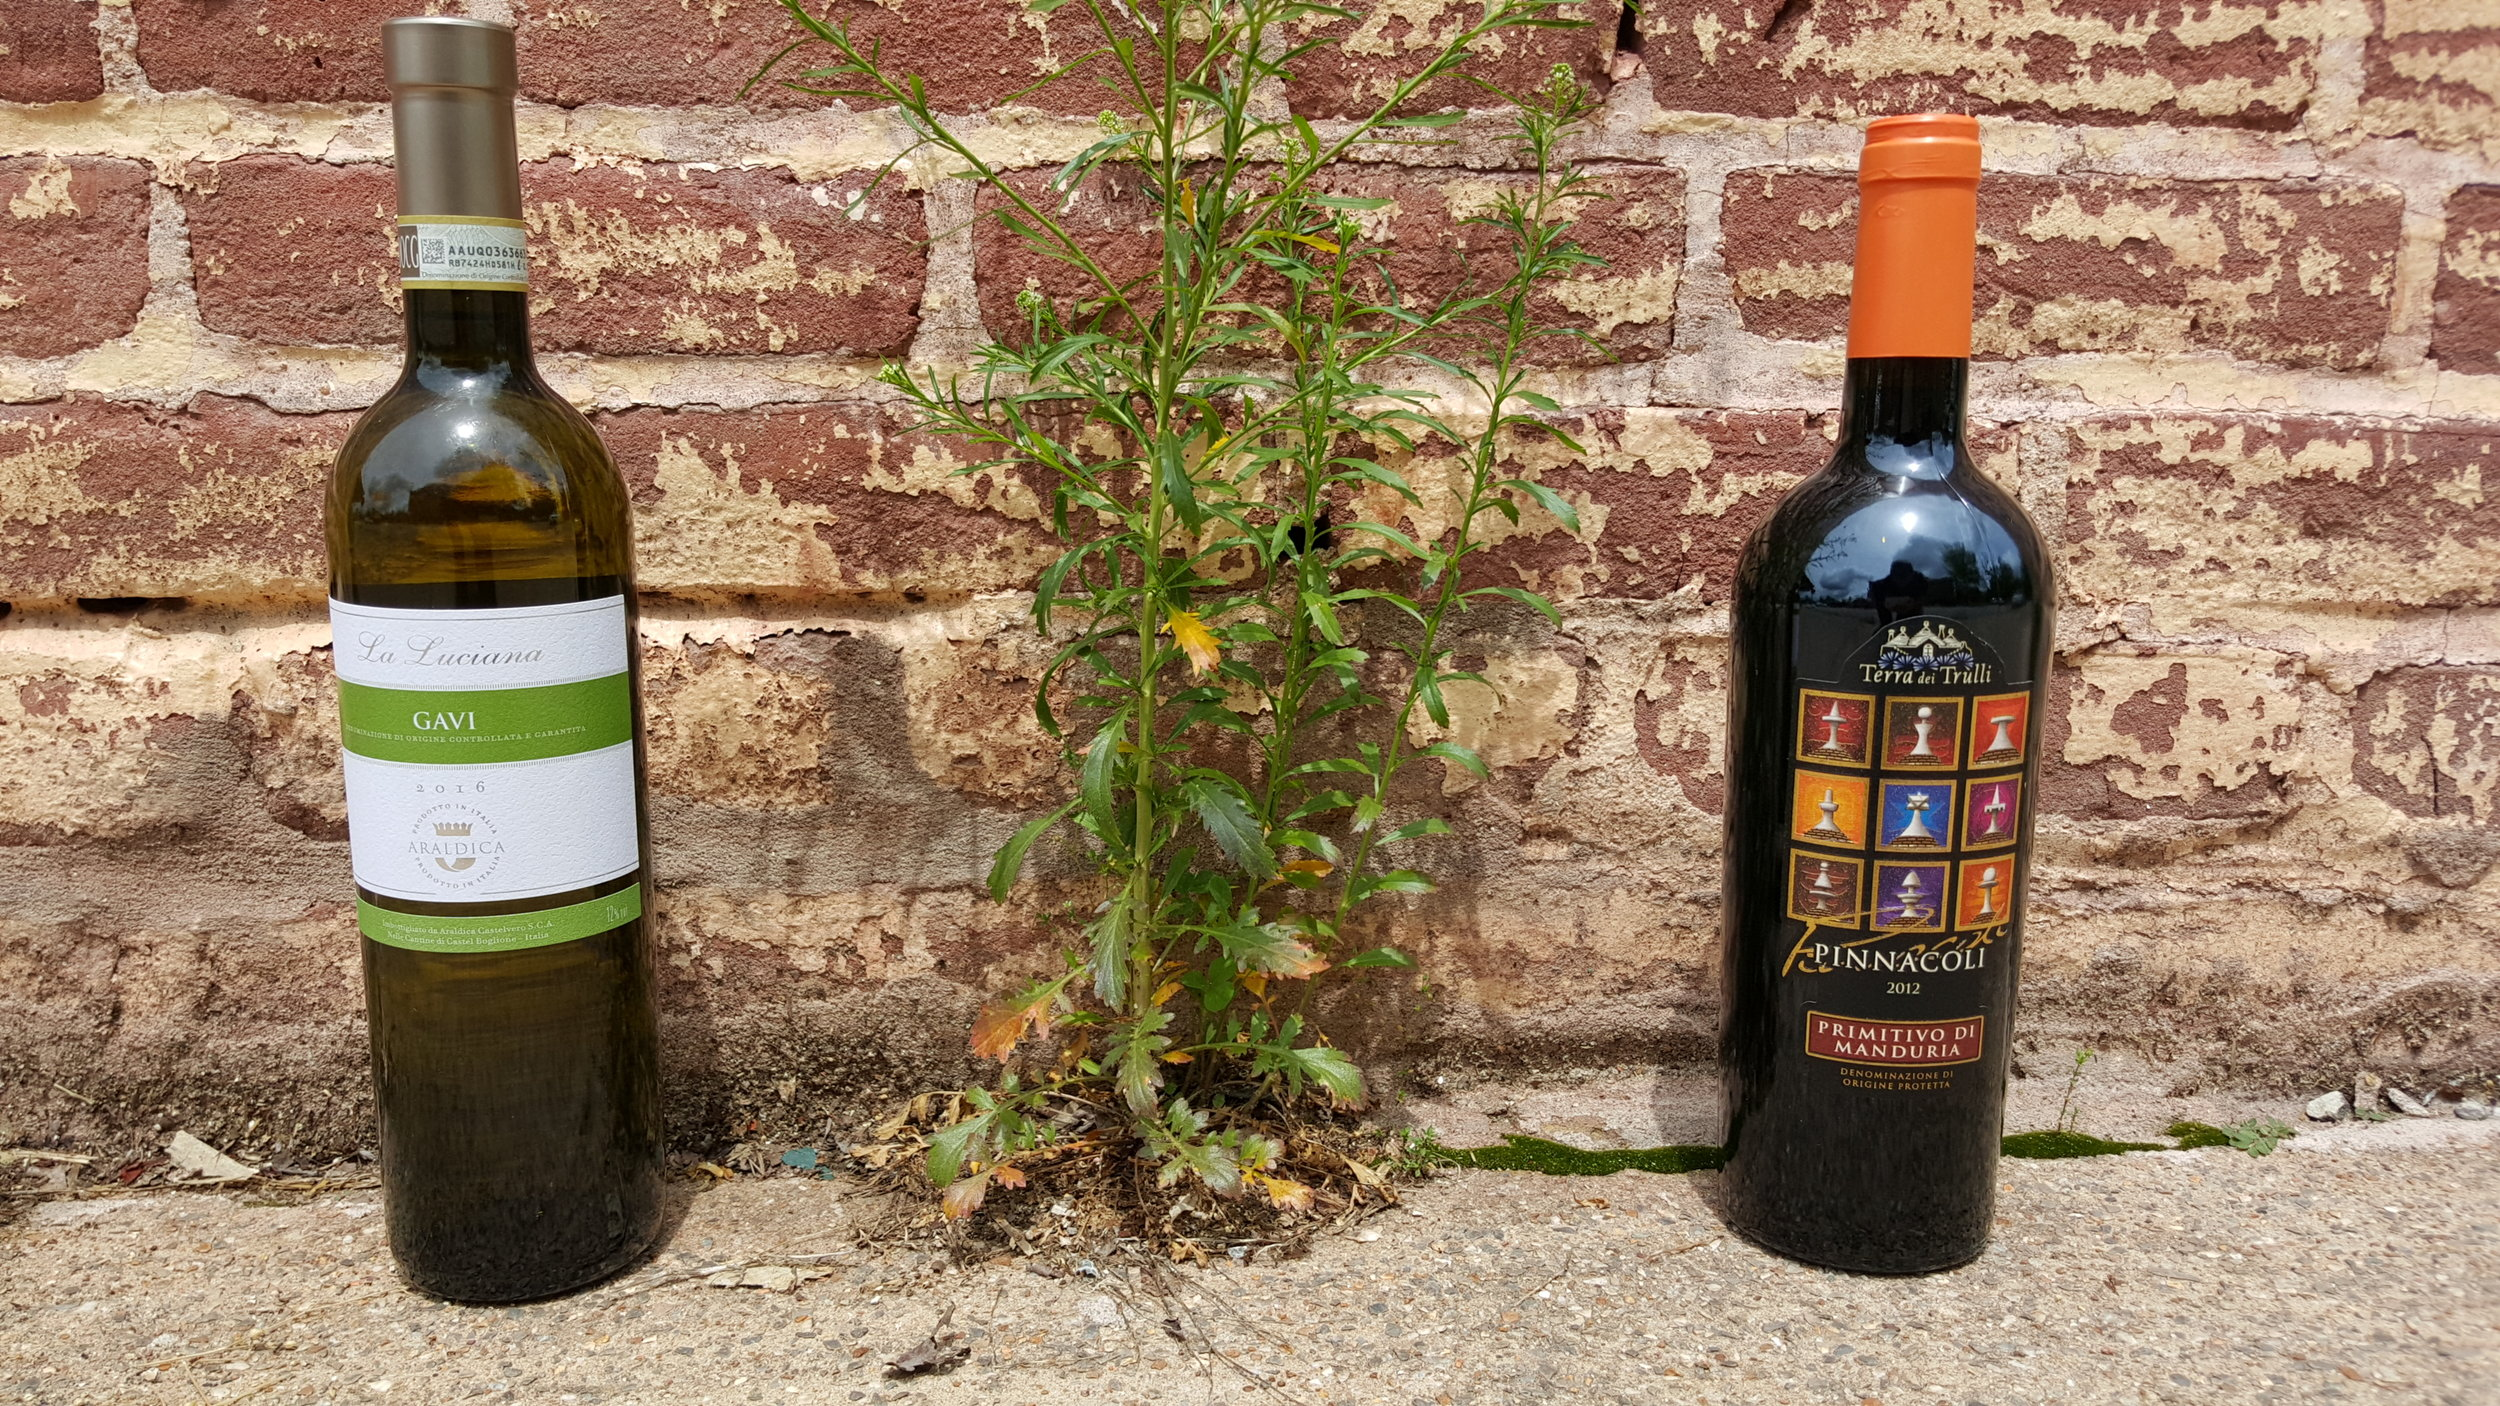 Even our wines are participating in #justawall!